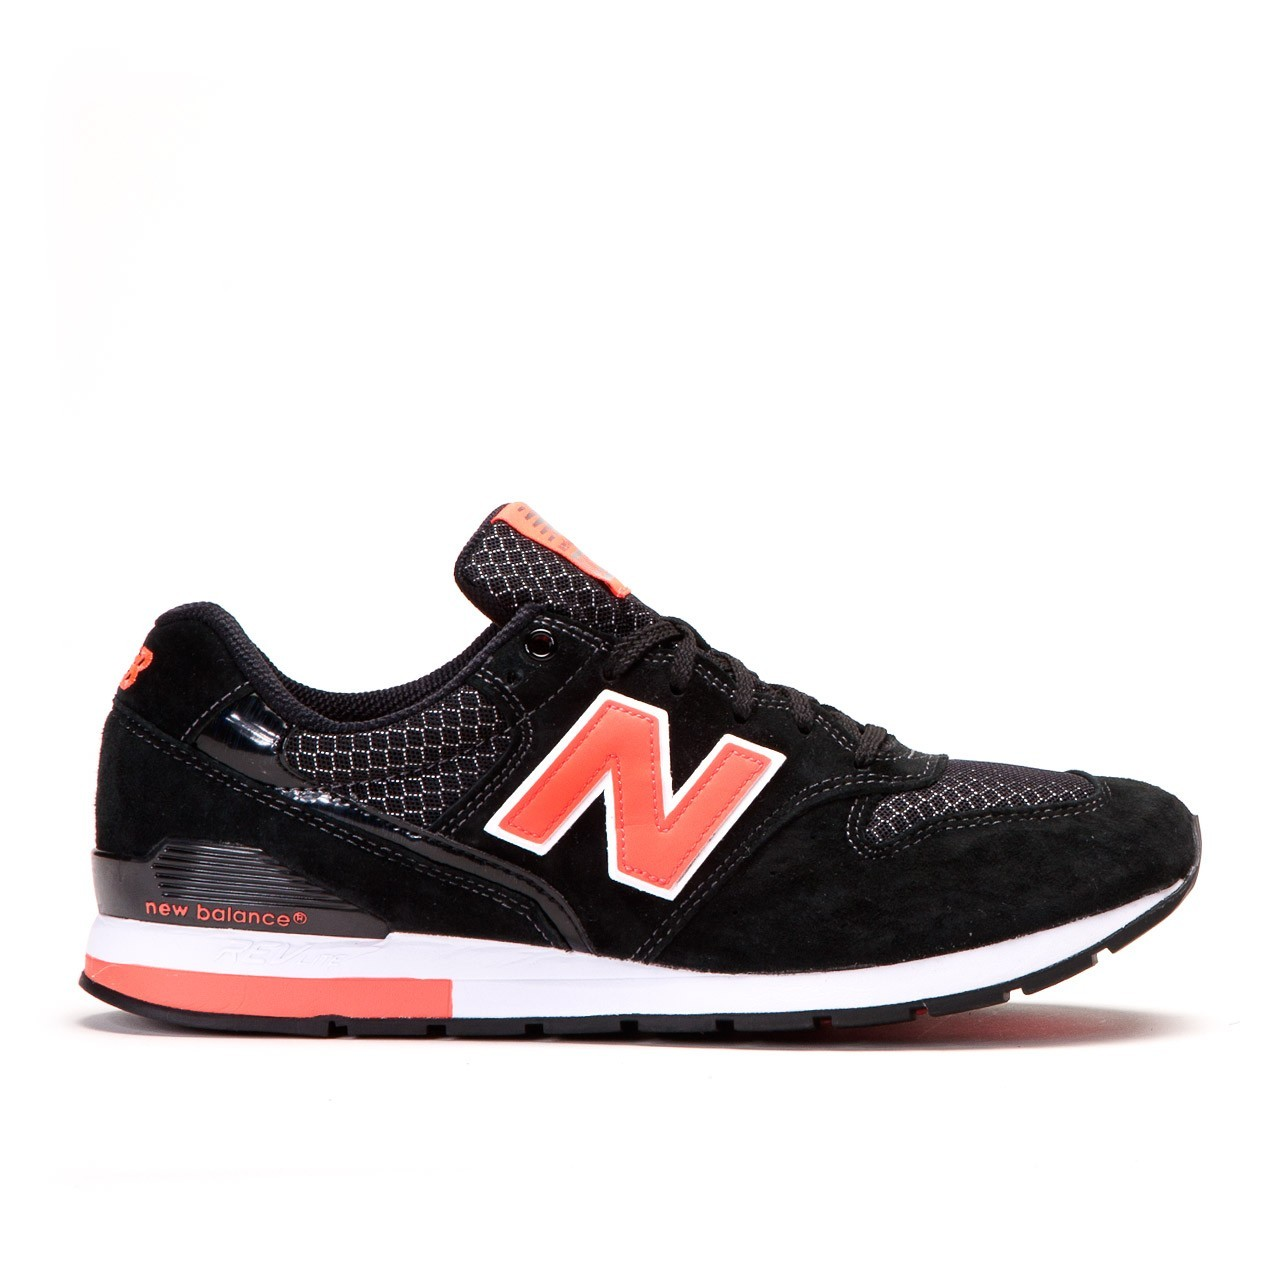 New Balance MRL 996 EP Unisex Trainers Prism Violet Black Coral White